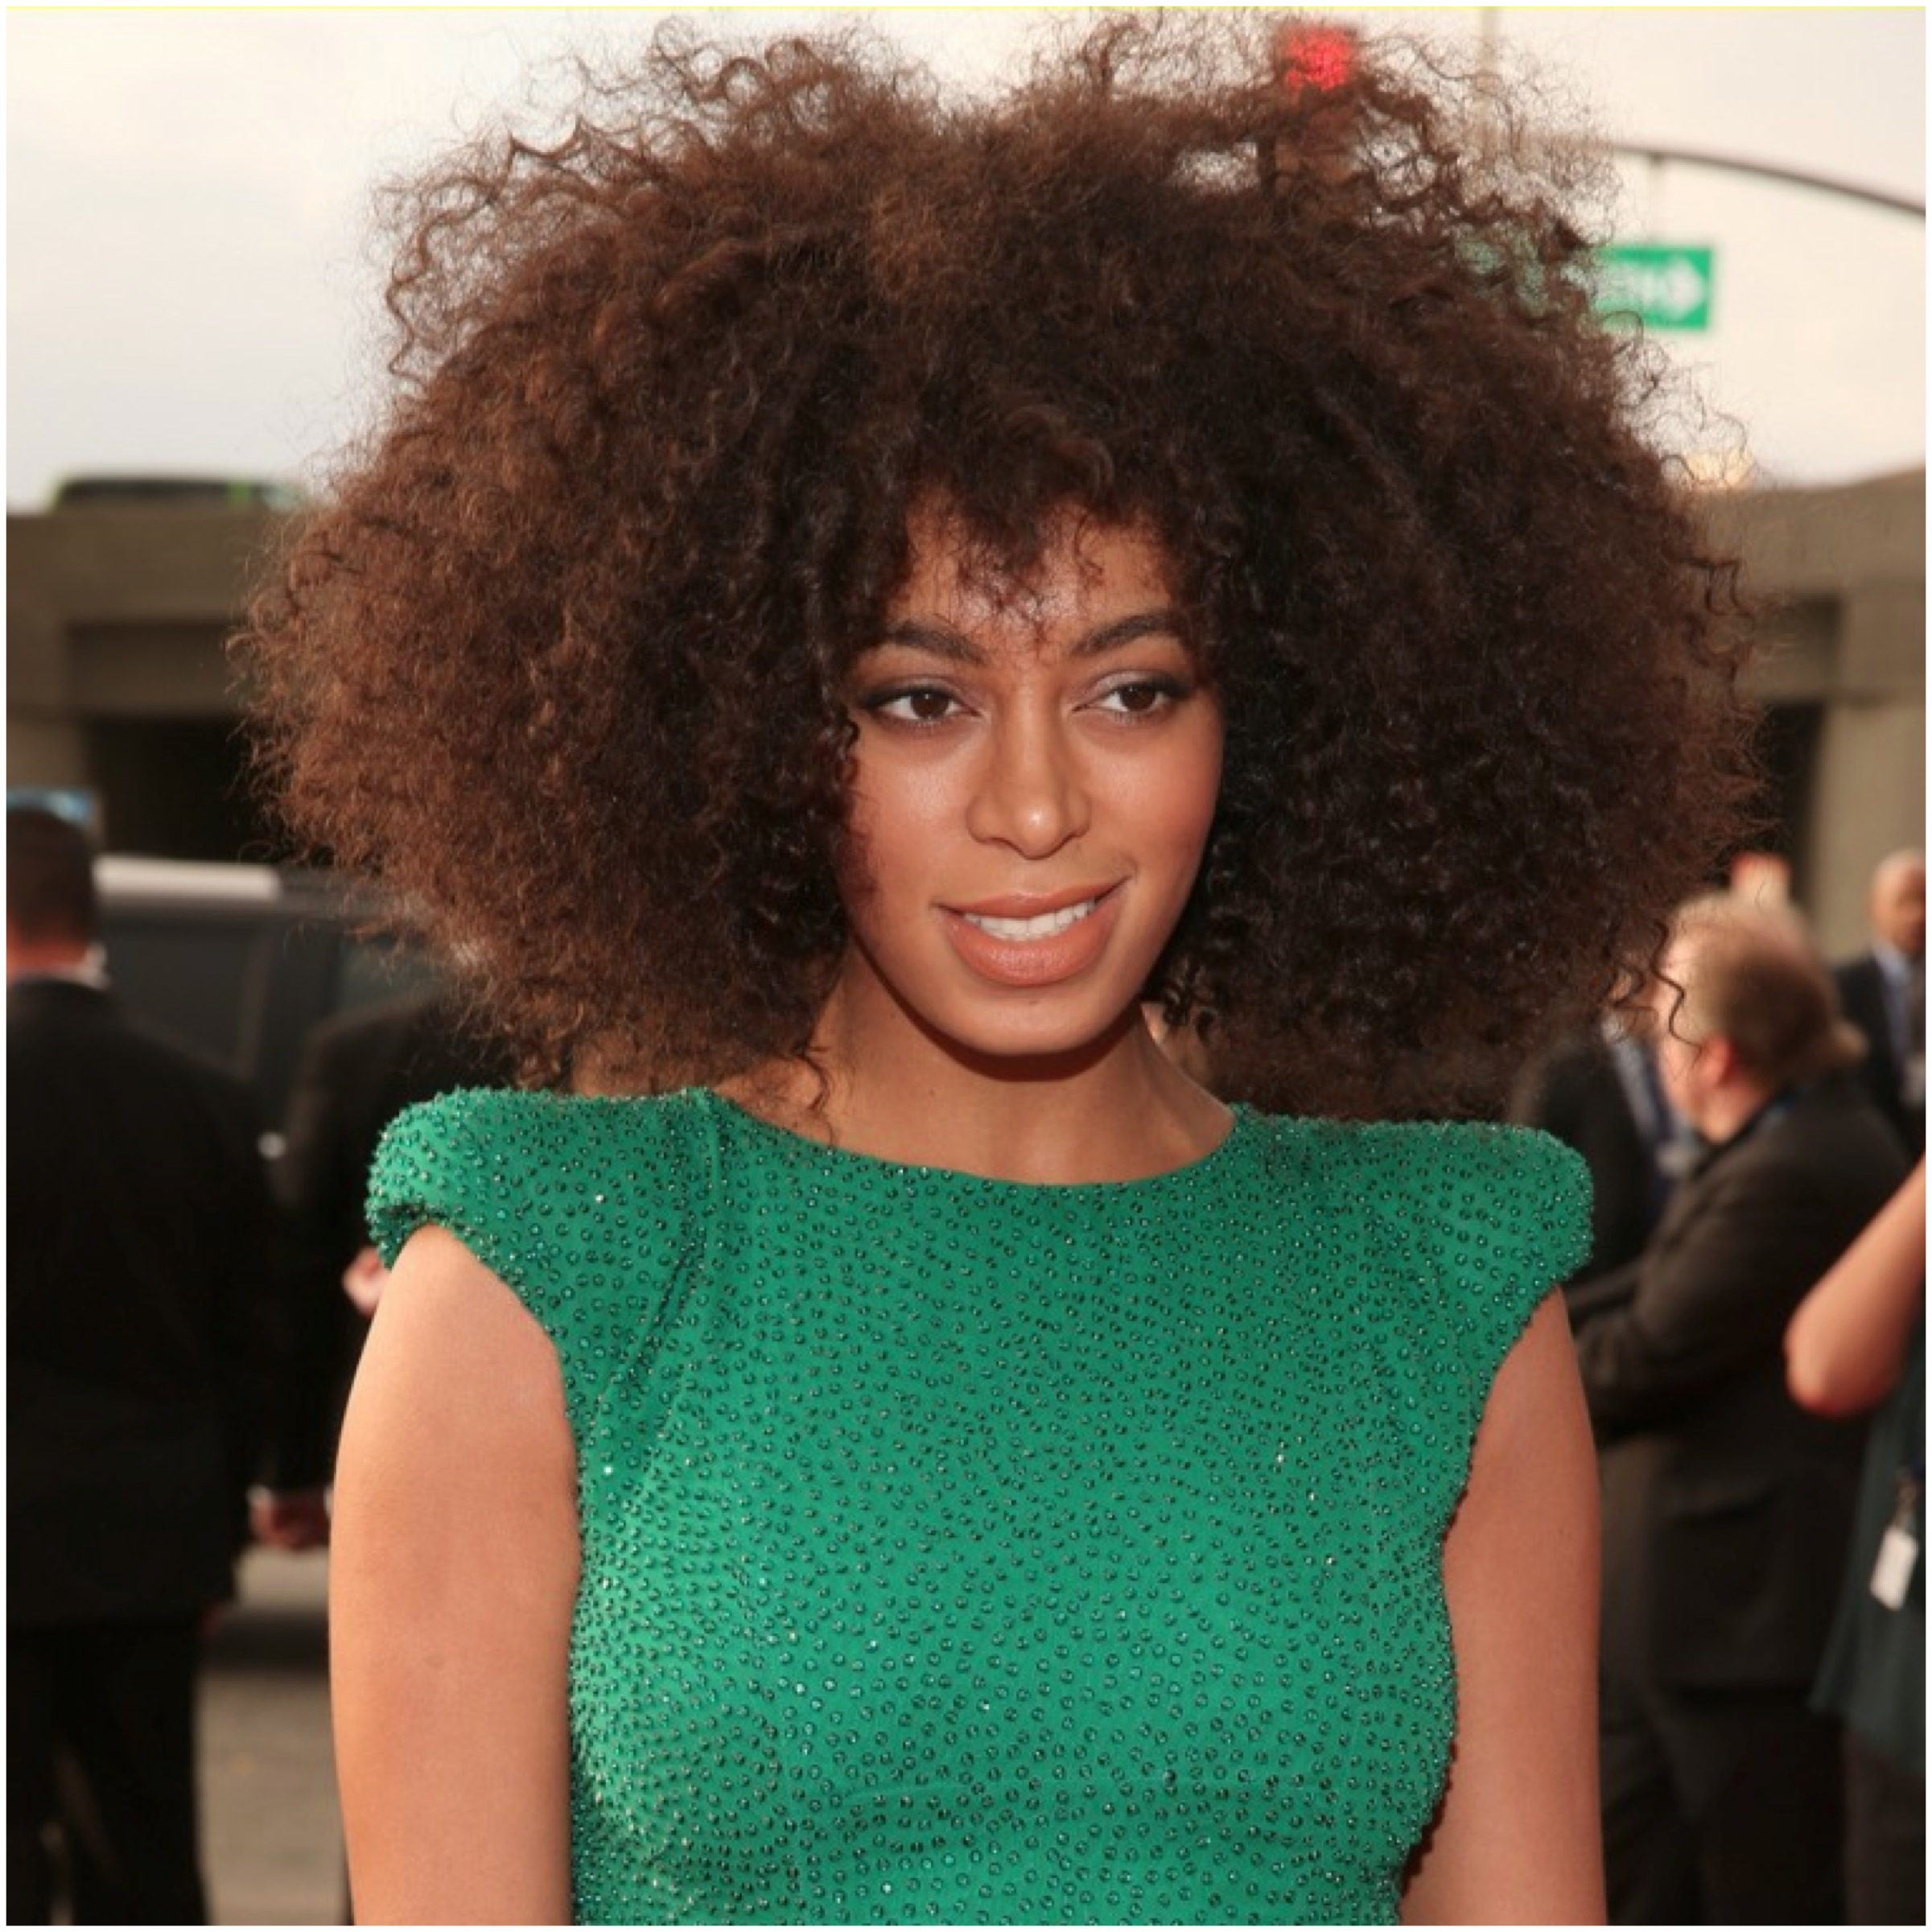 Solange Knowles Beauty Banter